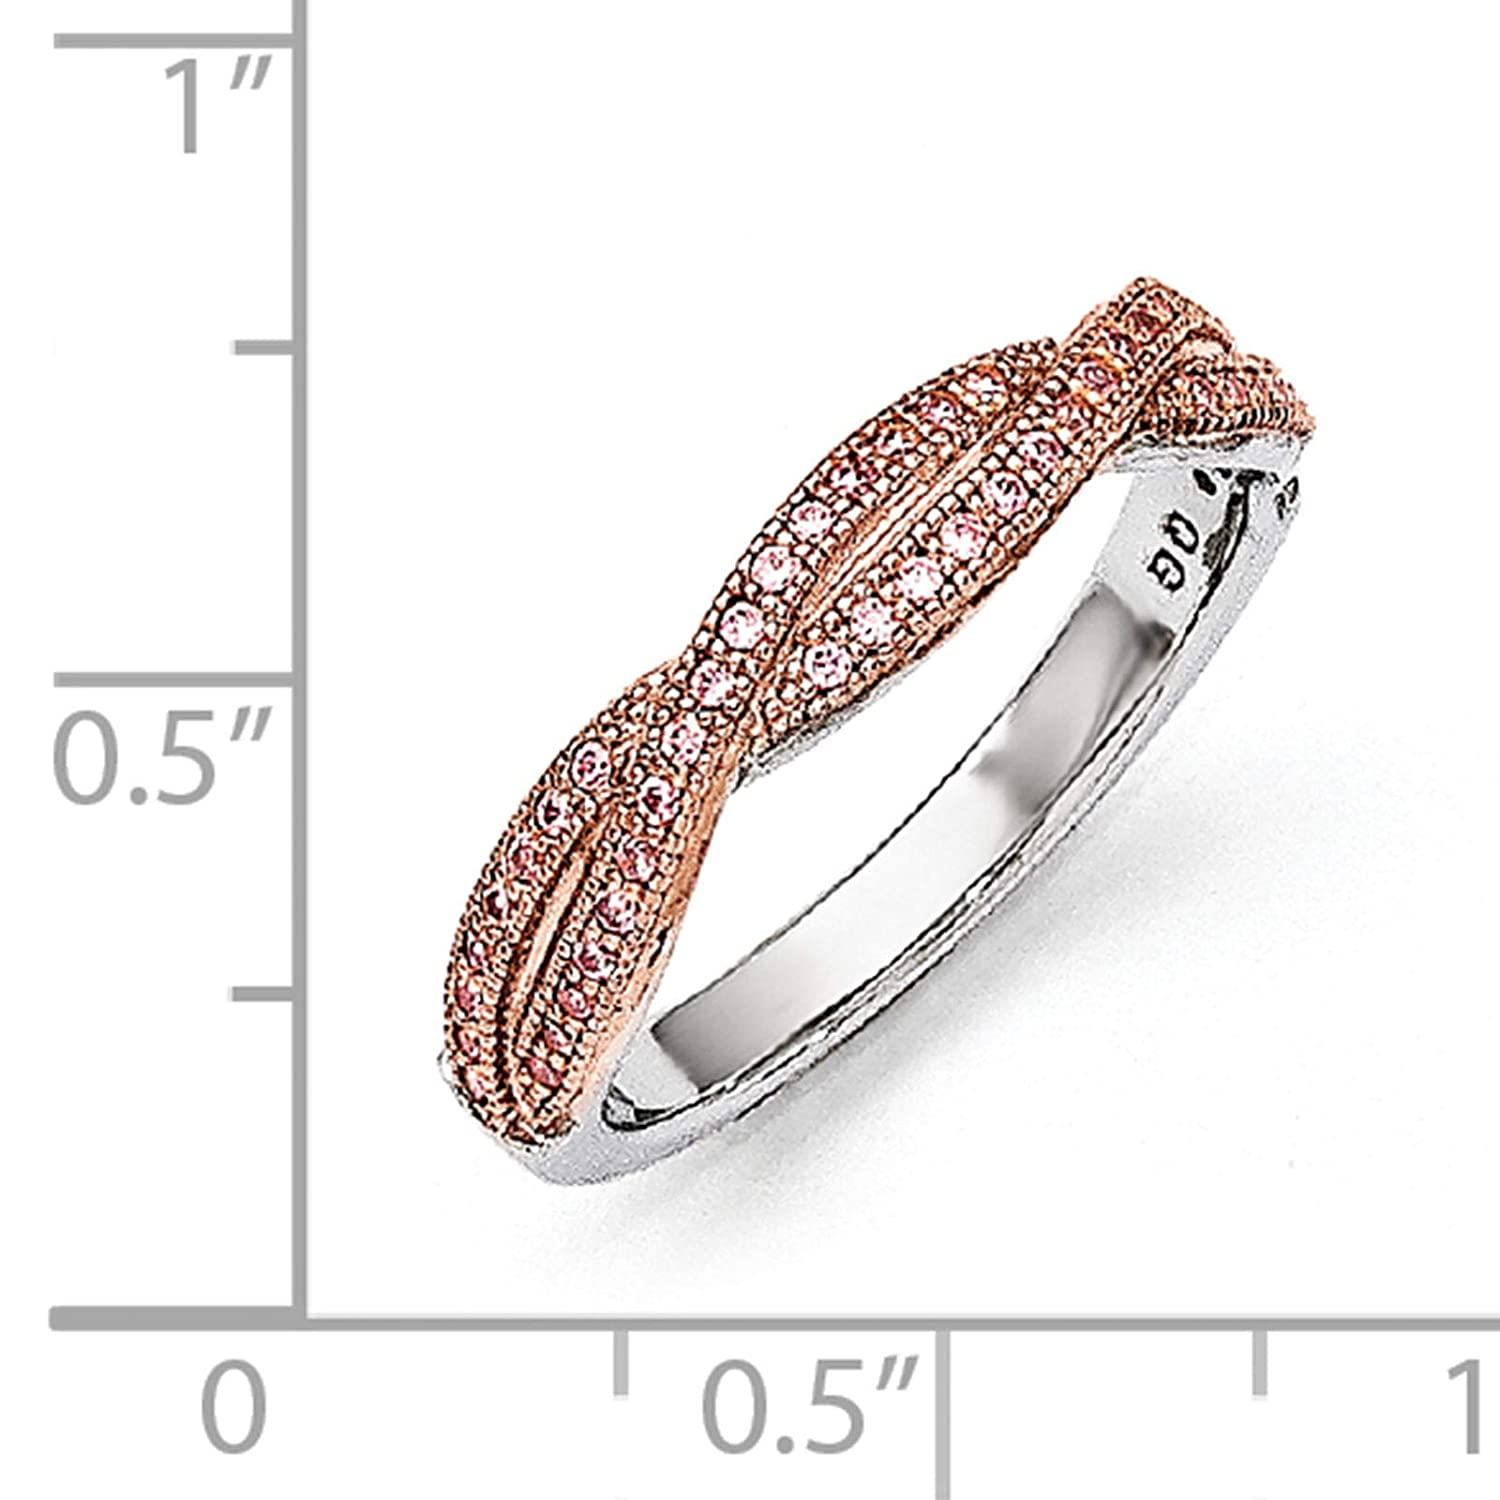 Brilliant Embers 925 Sterling Silver Rhodium-plated /& Rose-tone Polished CZ Ring Band Size 6-8